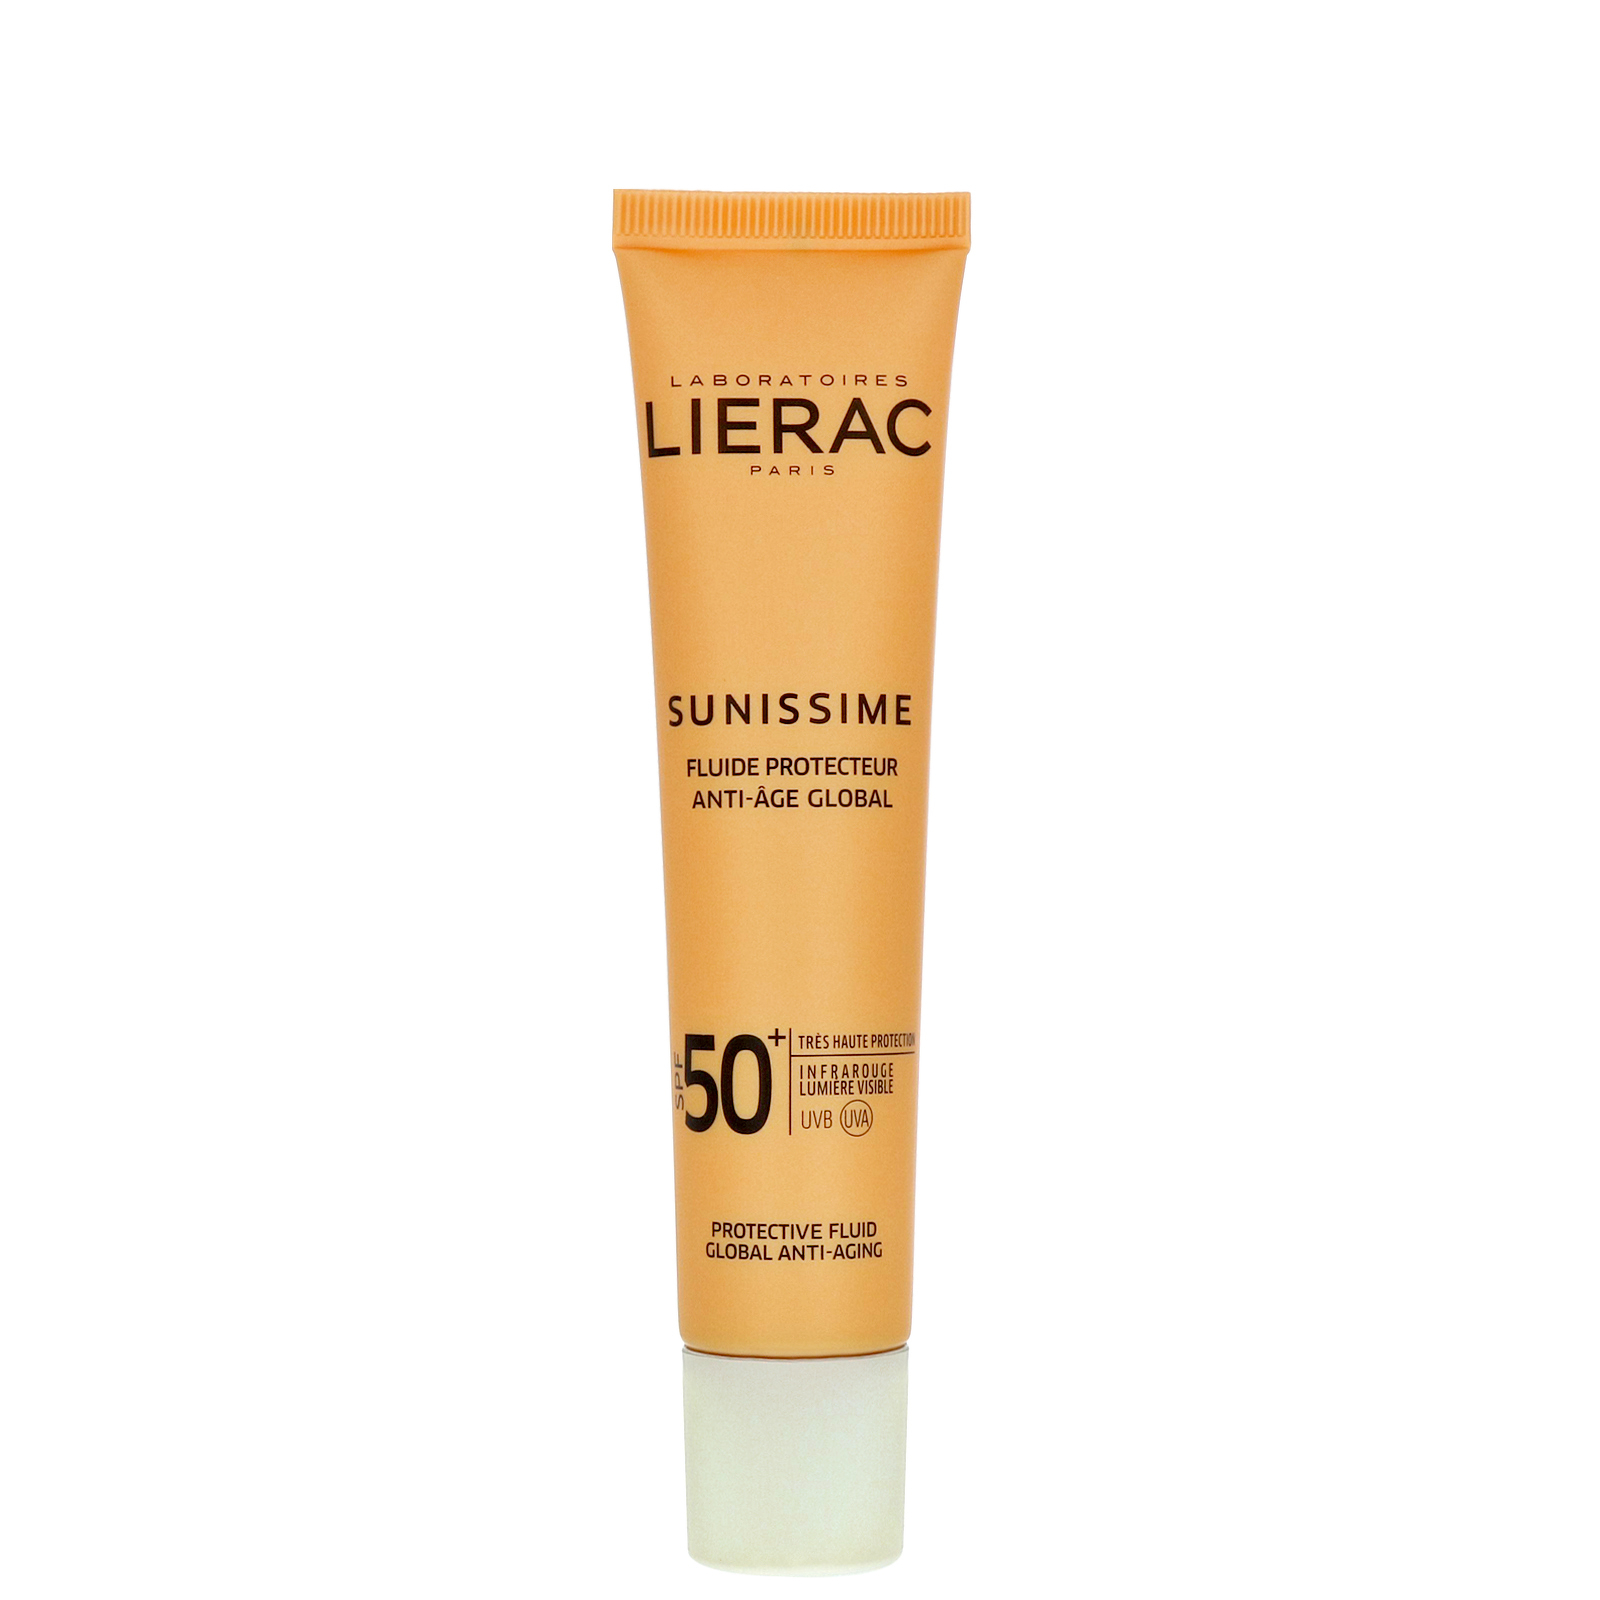 Lierac Sunissime Face Energizing Protecting Fluid SPF50 40ml / 1.35 fl.oz.